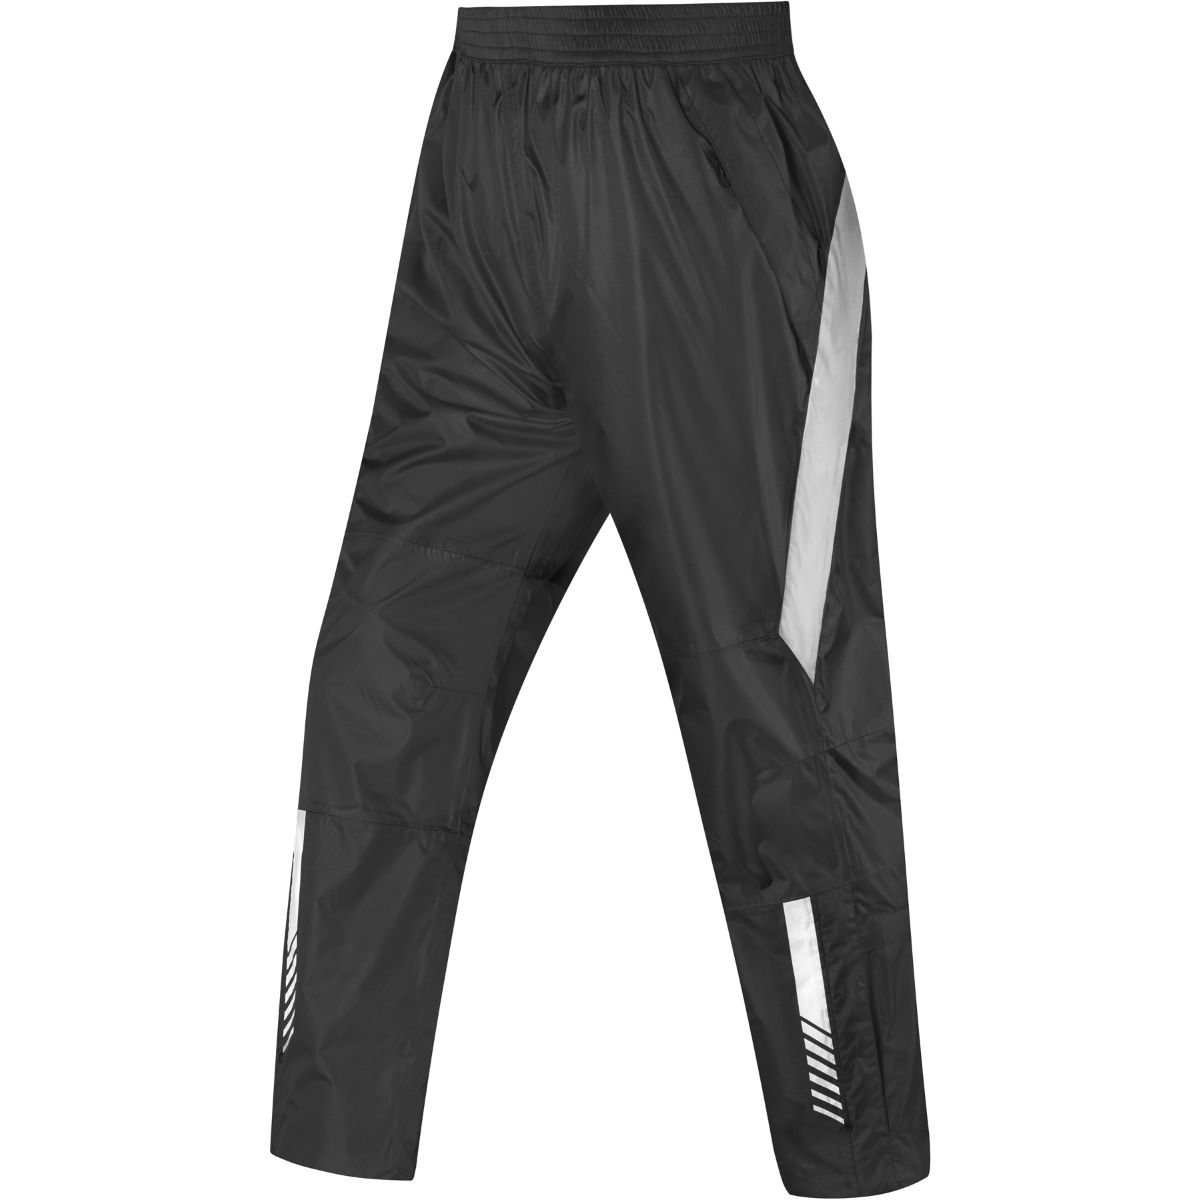 Altura Altura Nightvision 3 Waterproof Over Trousers   Trousers